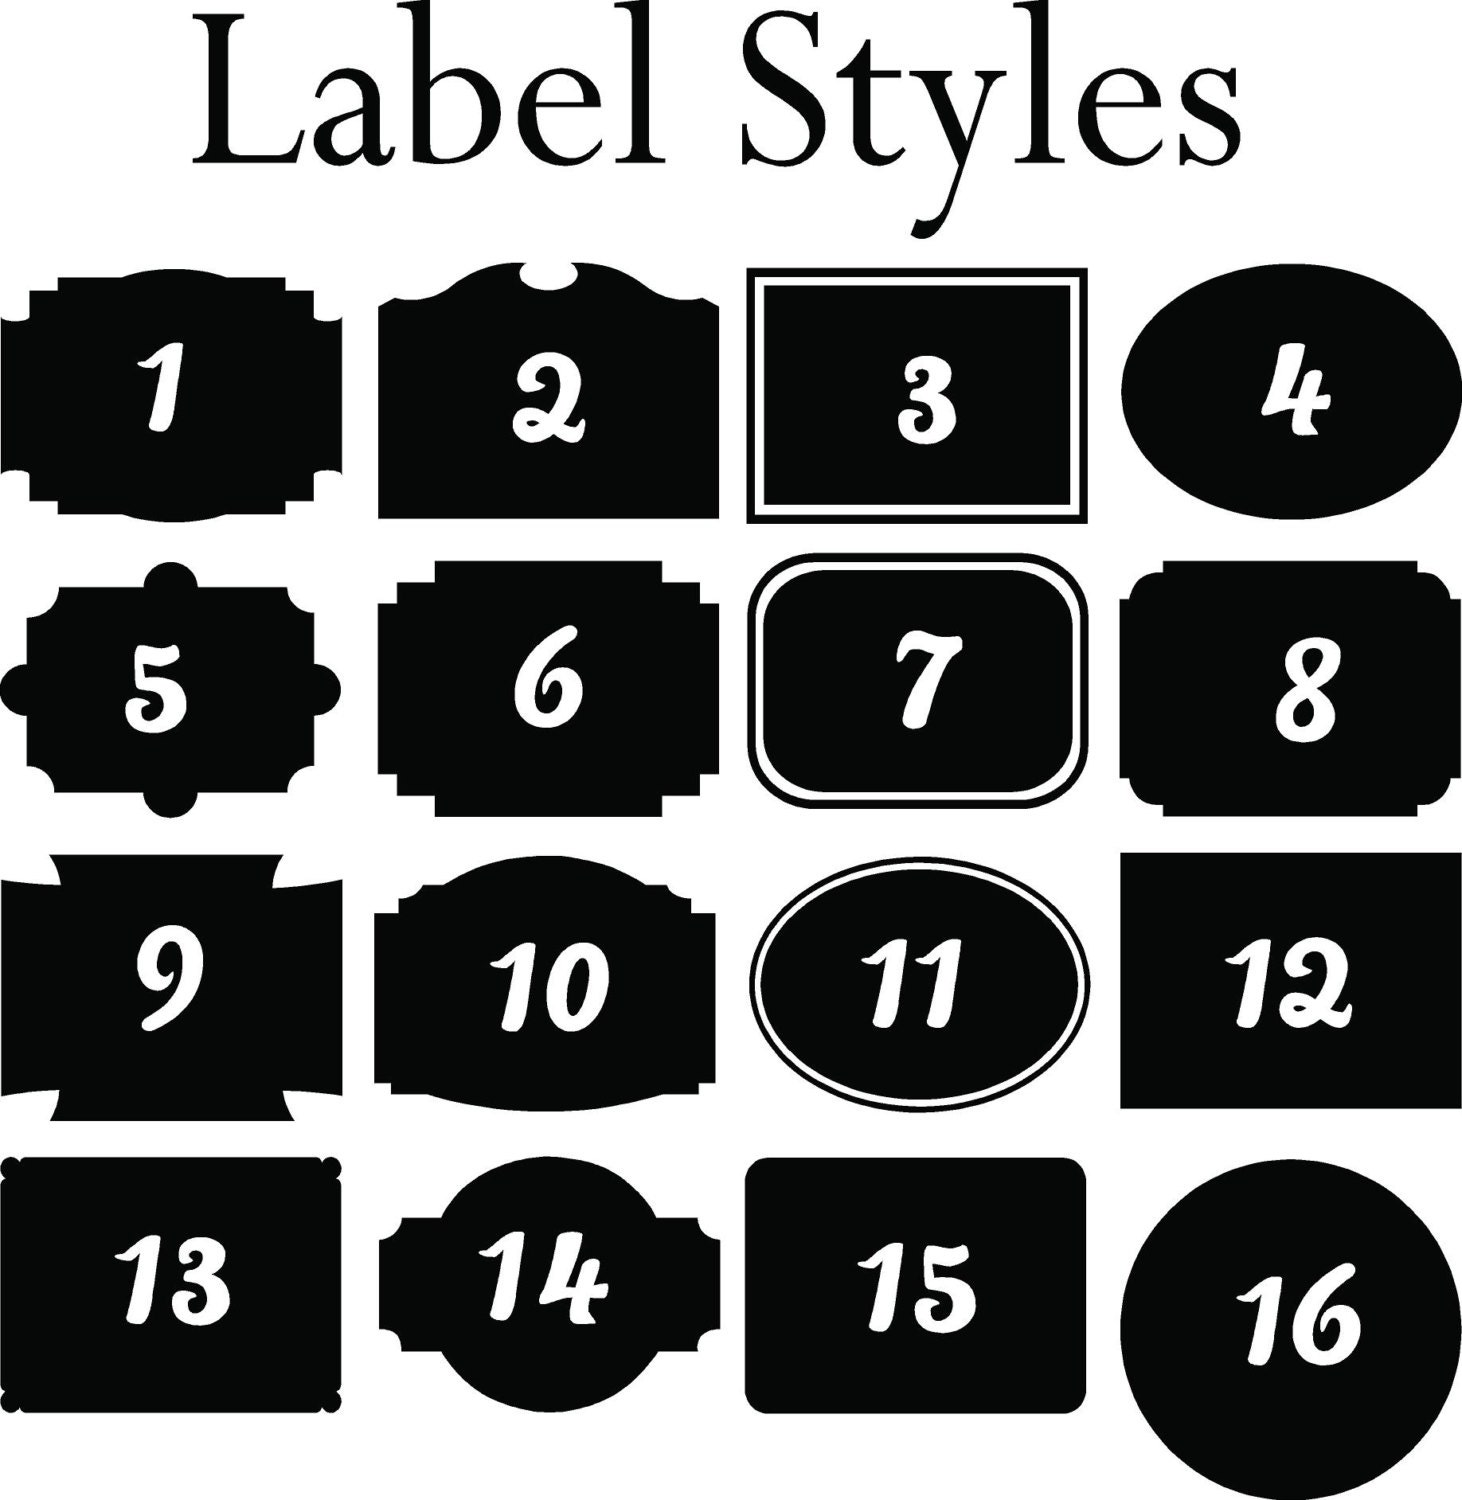 labels for kitchen